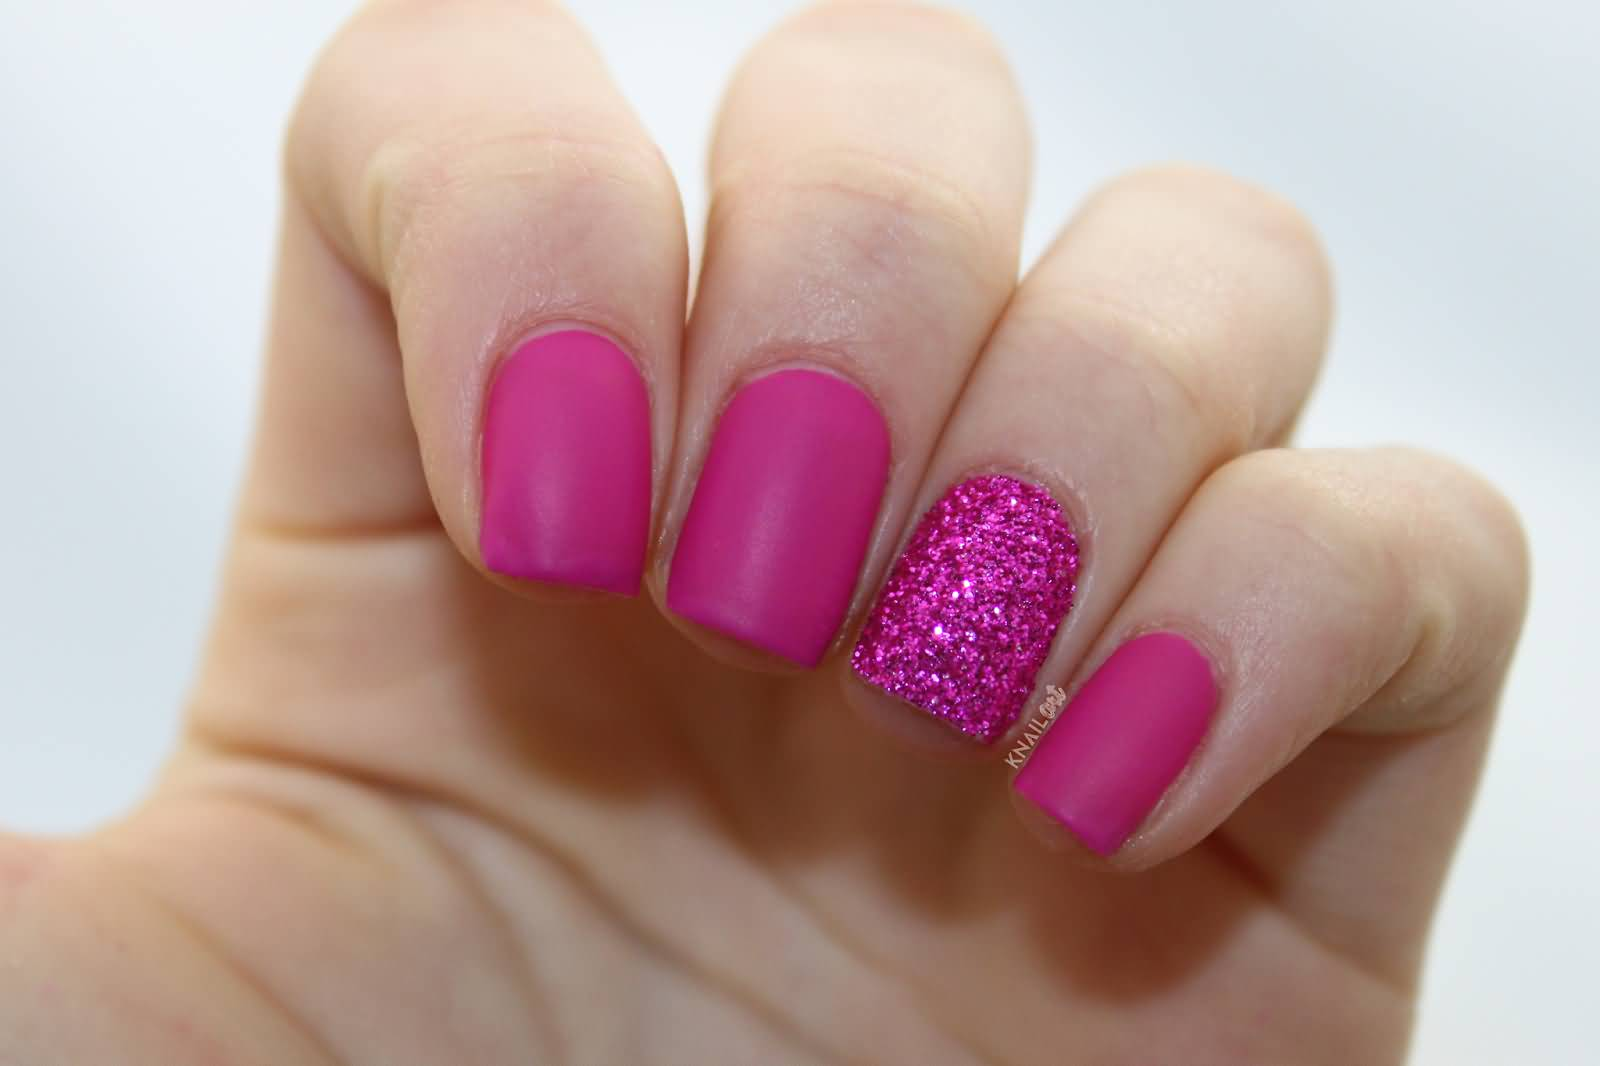 65+ Incredible Glitter Accent Nail Art Ideas You Need To Try